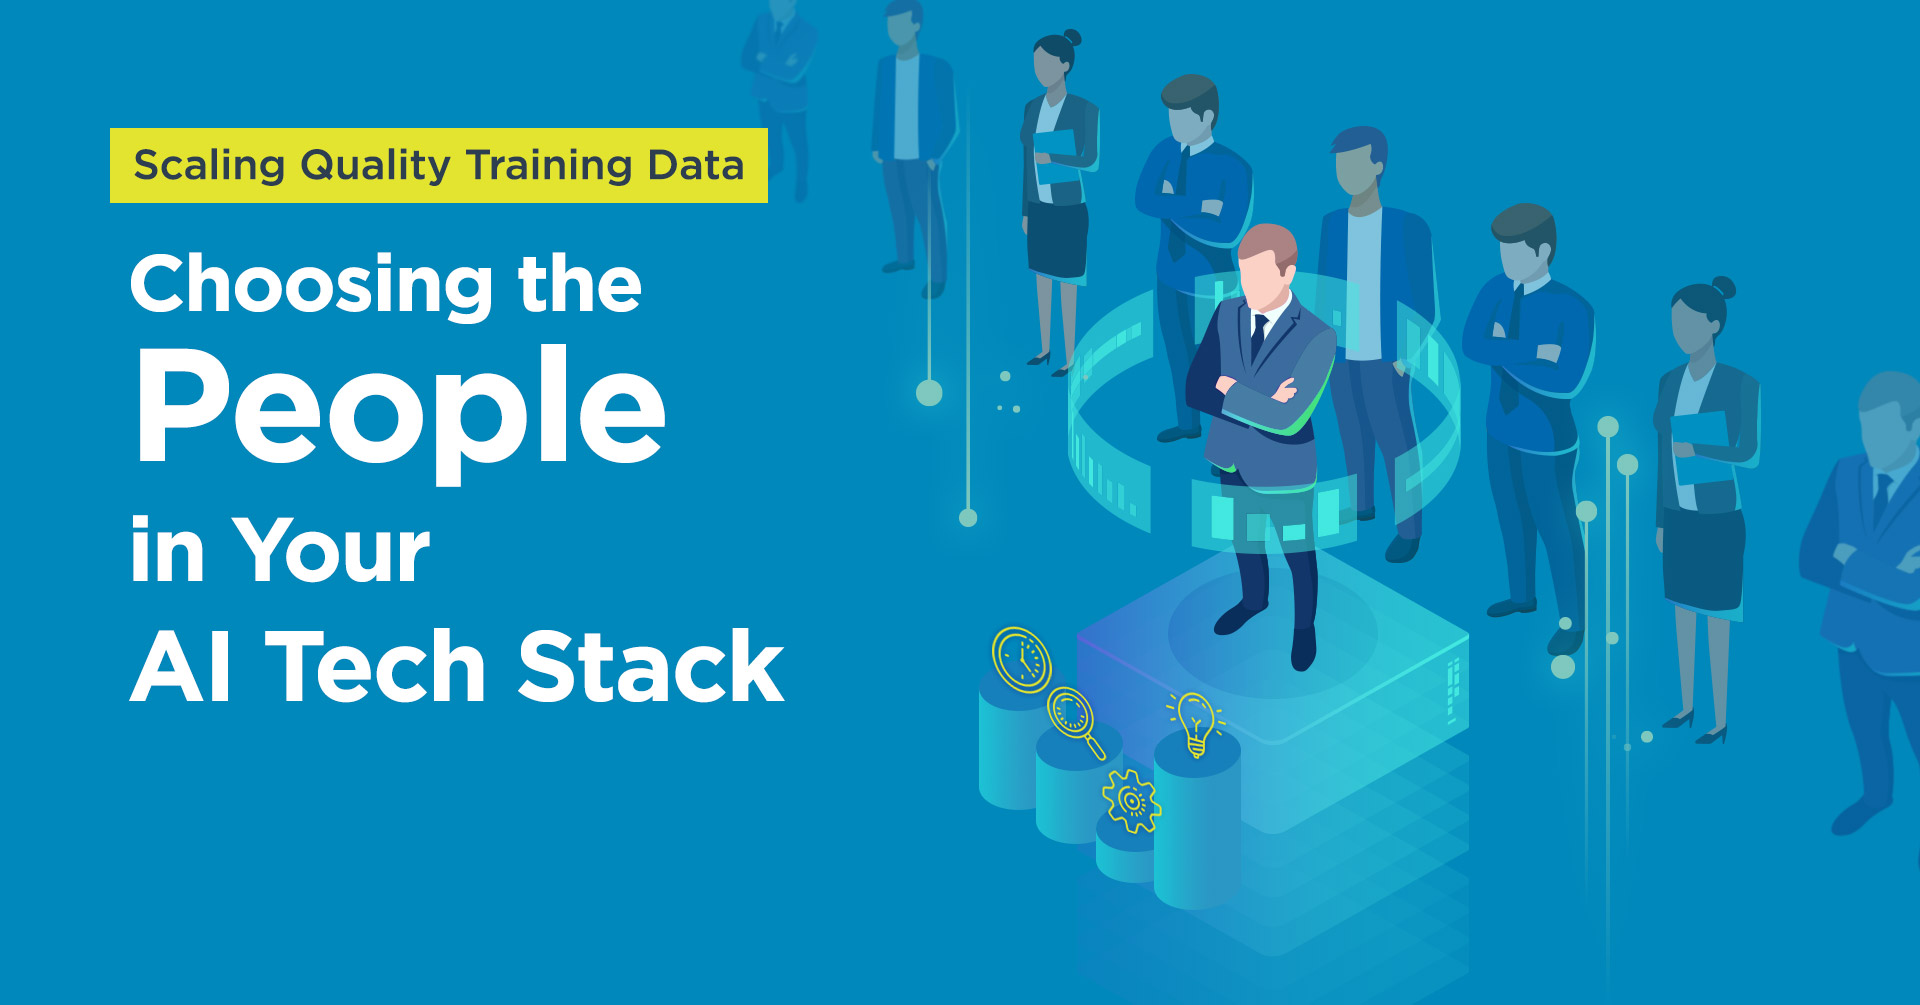 Scaling Quality Training Data: Choosing the People in Your AI Tech Stack